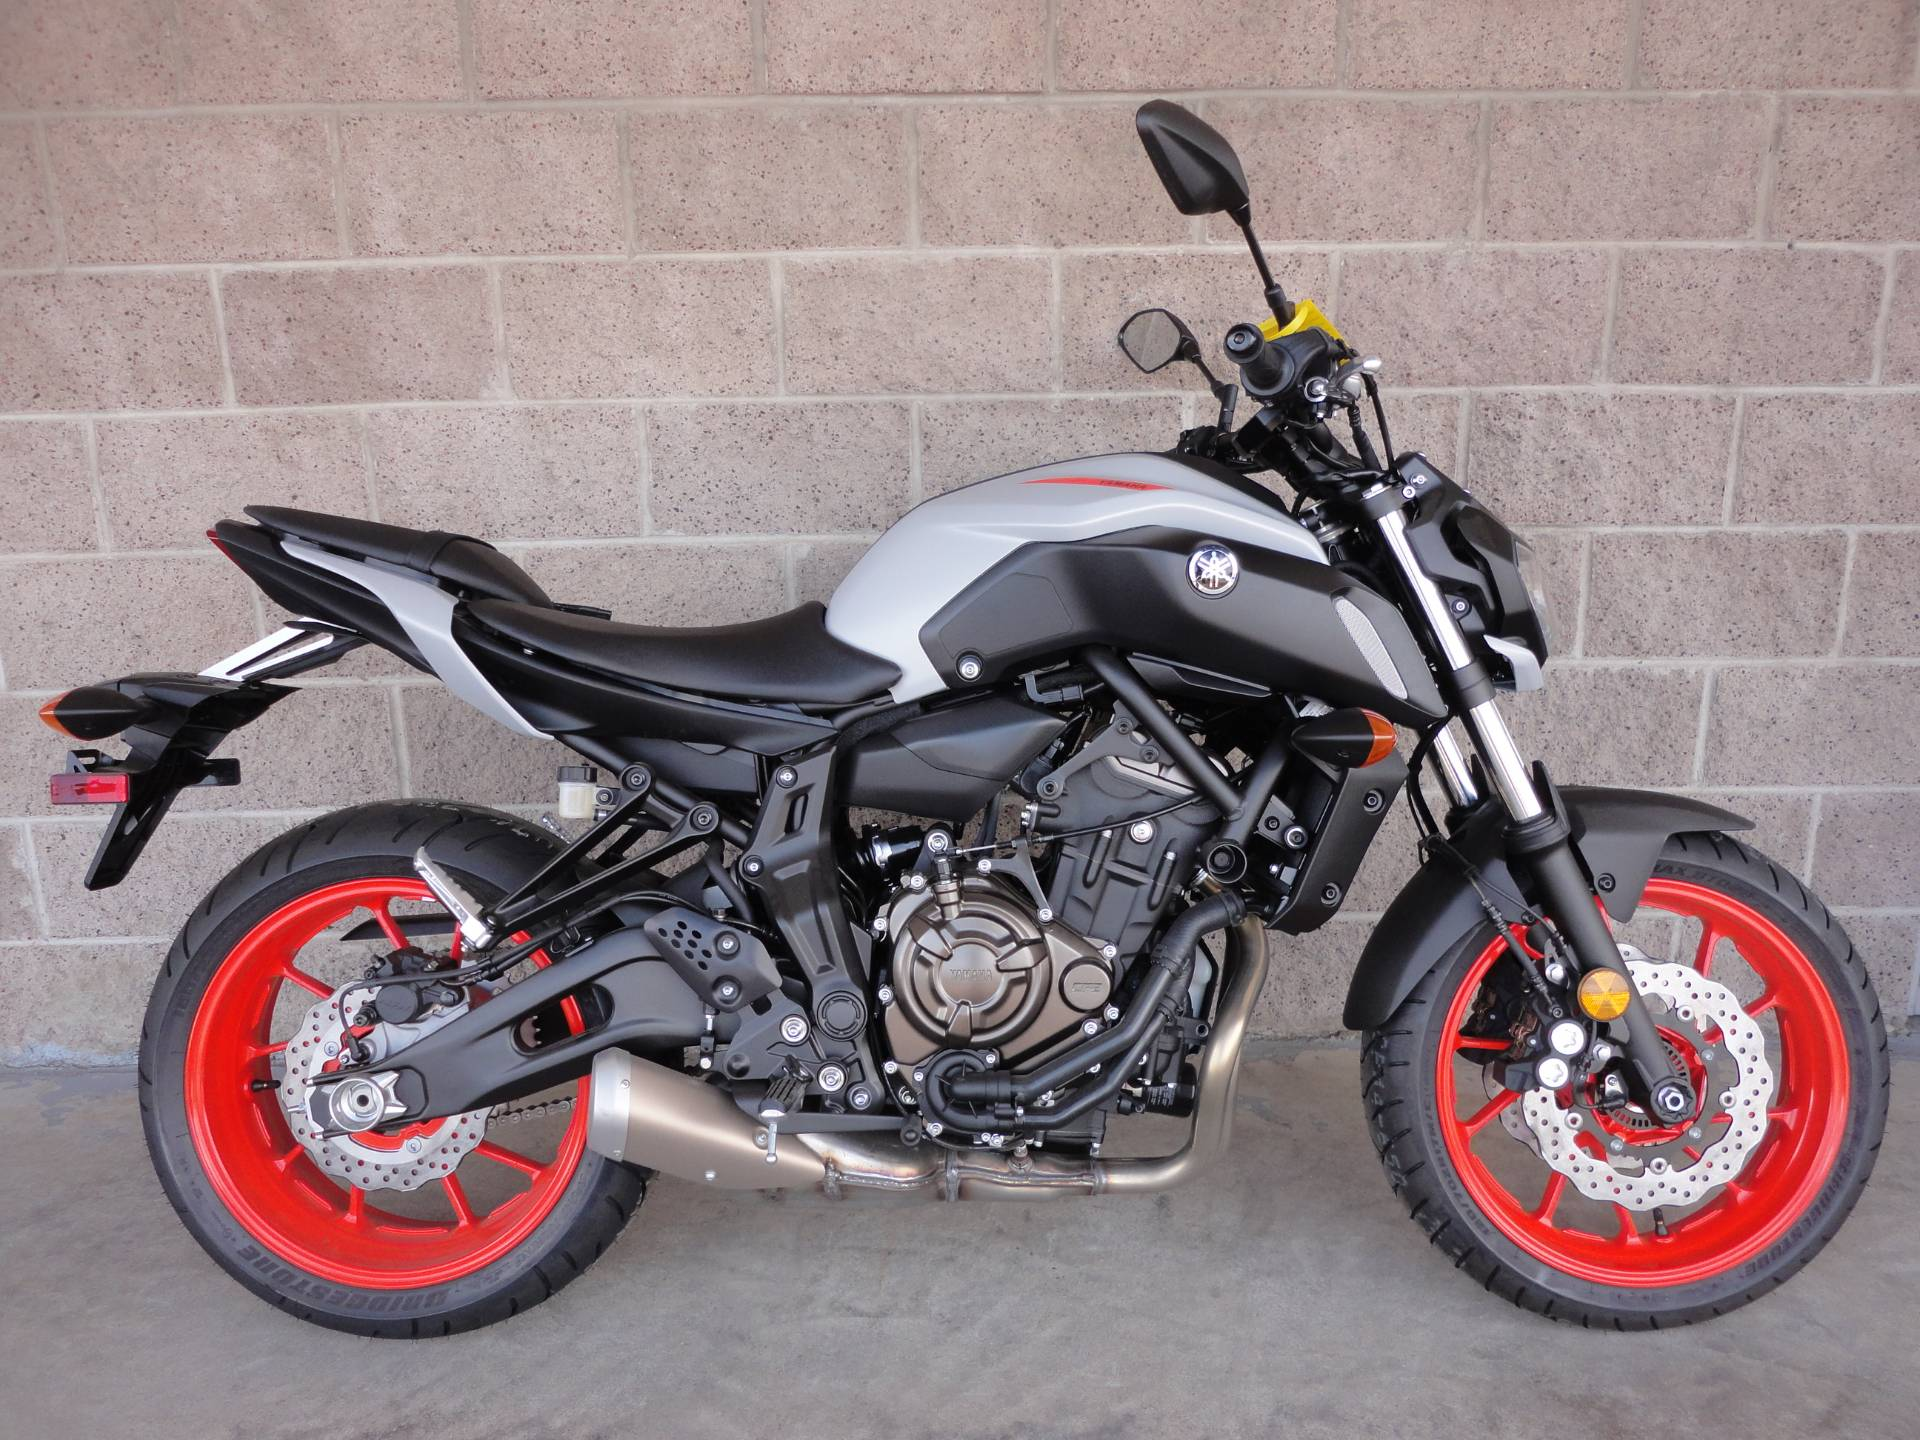 2019 Yamaha MT-07 in Denver, Colorado - Photo 13